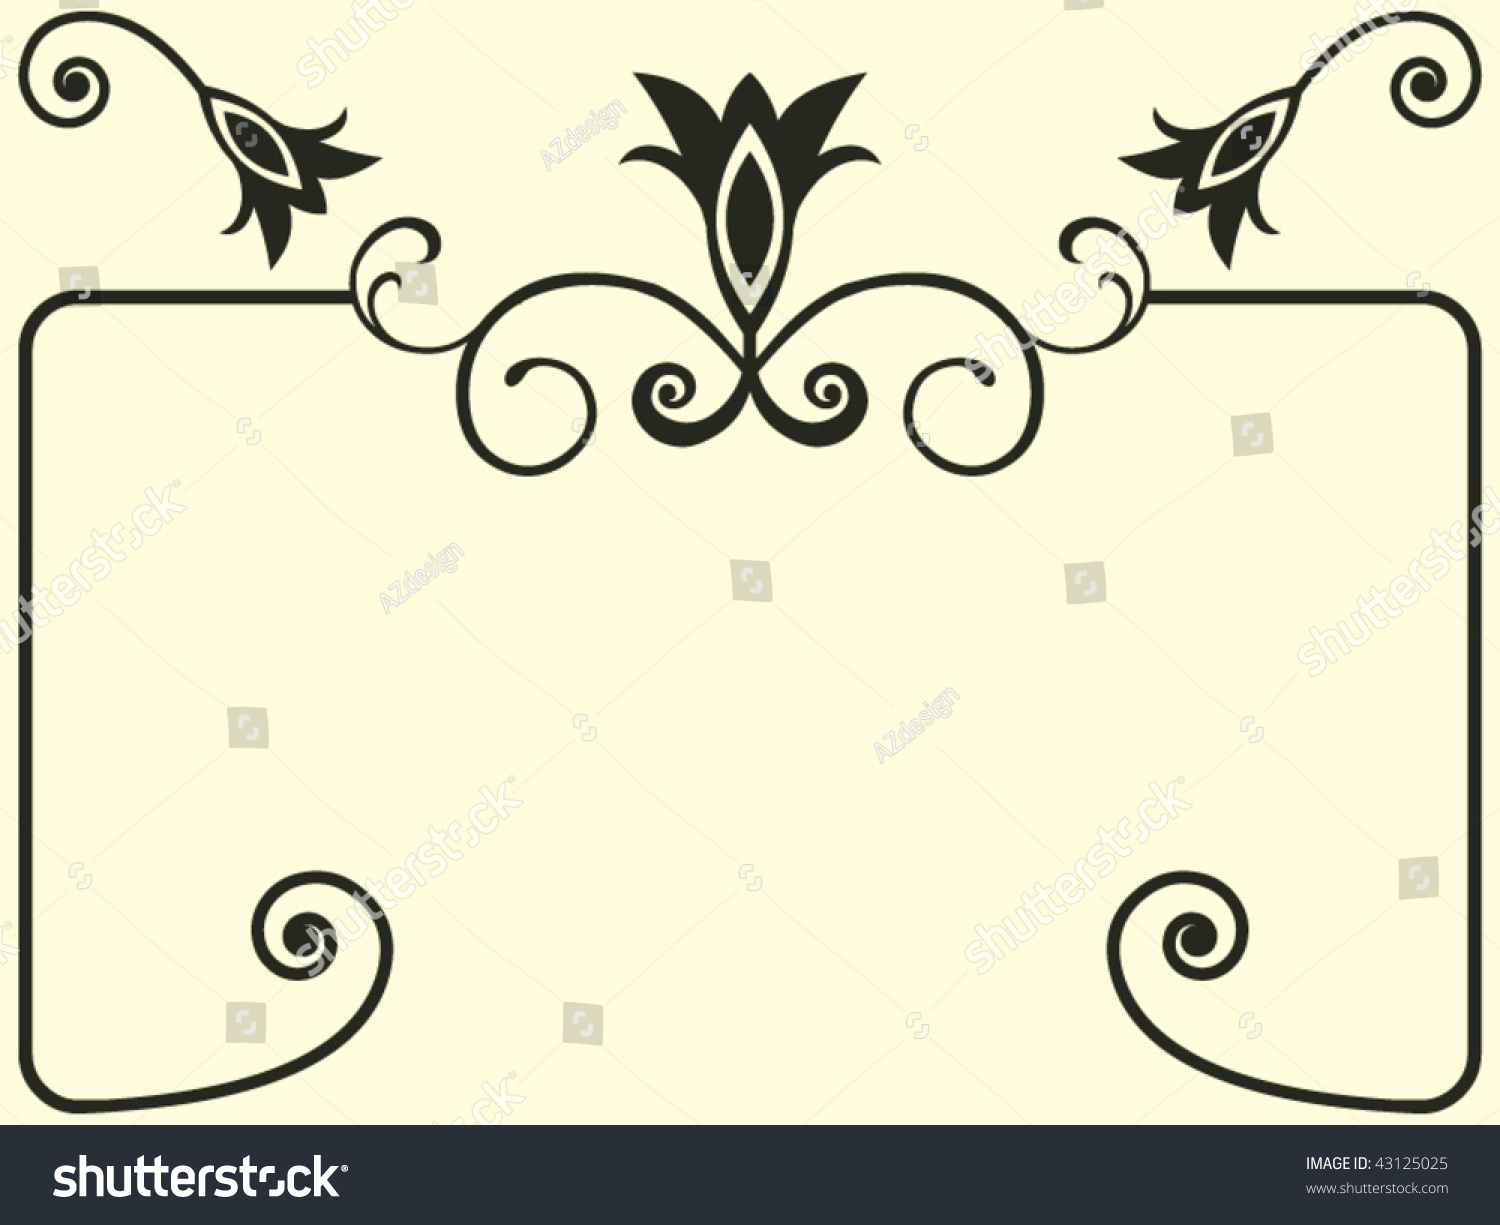 Baroque design elements abstract floral vectors for Baroque design elements